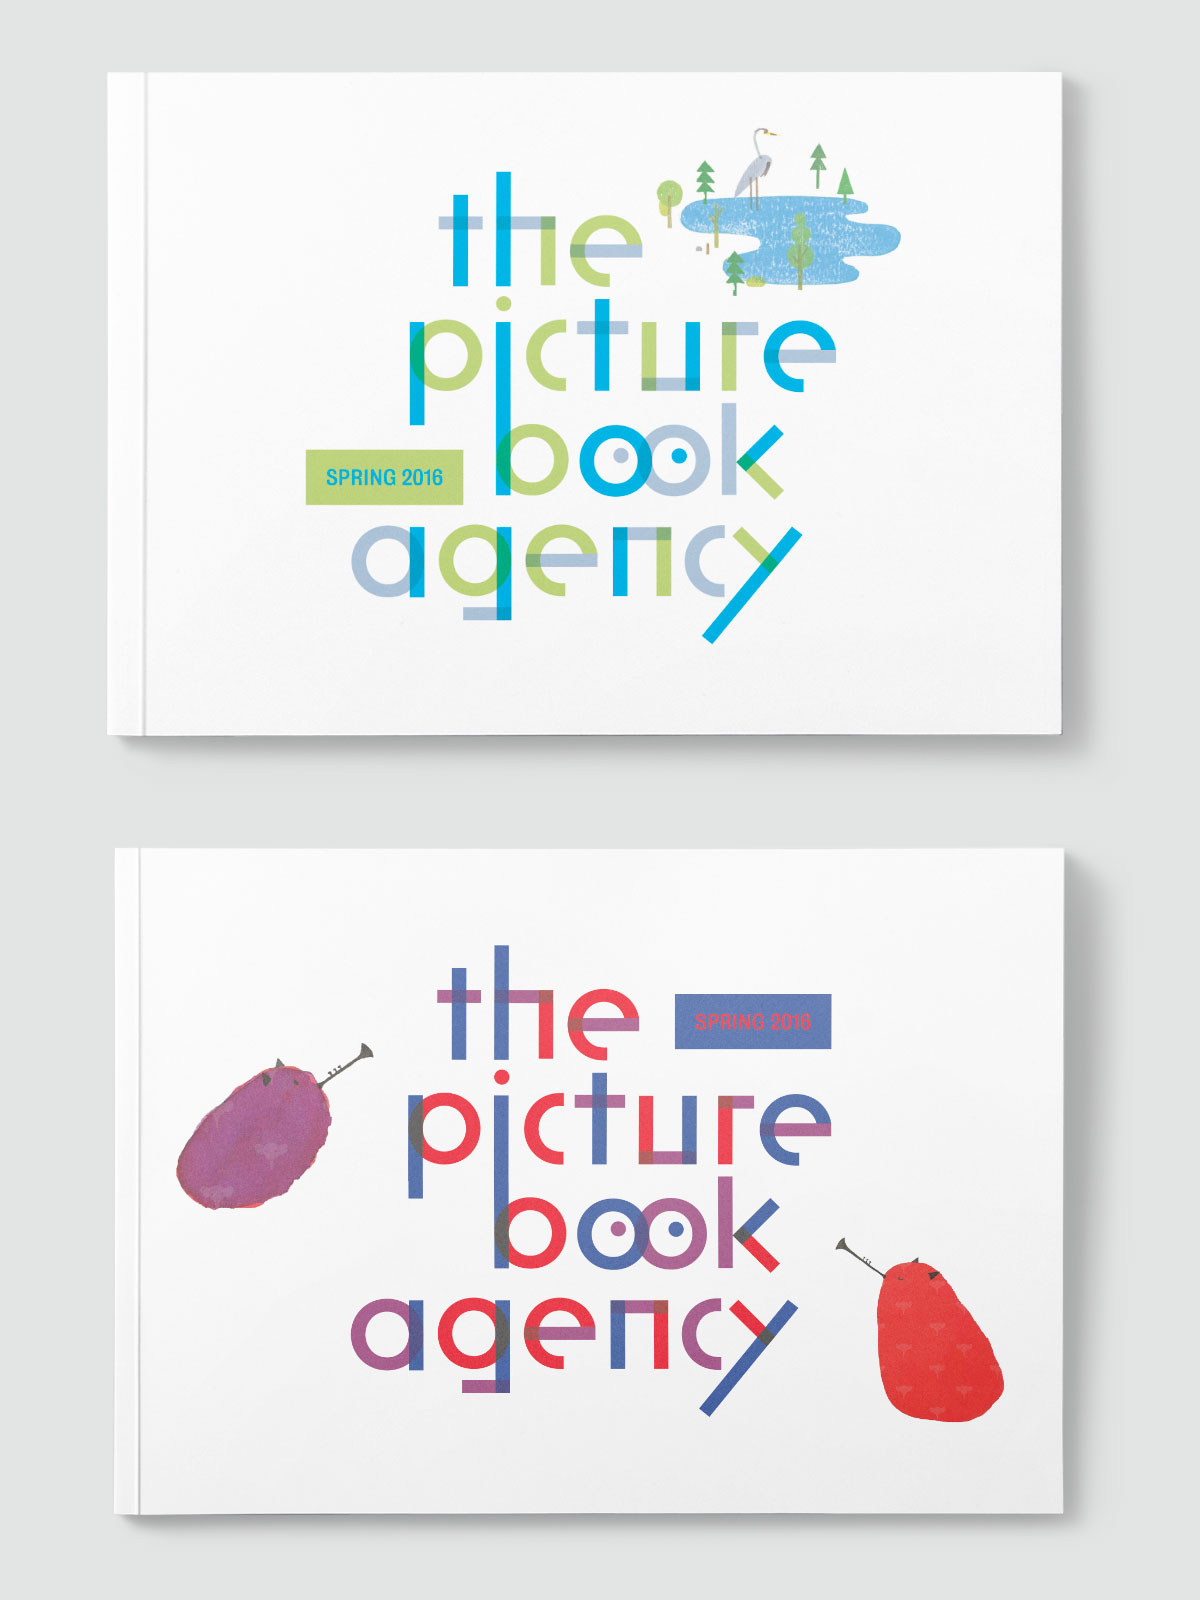 the_picture_book_agency_3.jpg